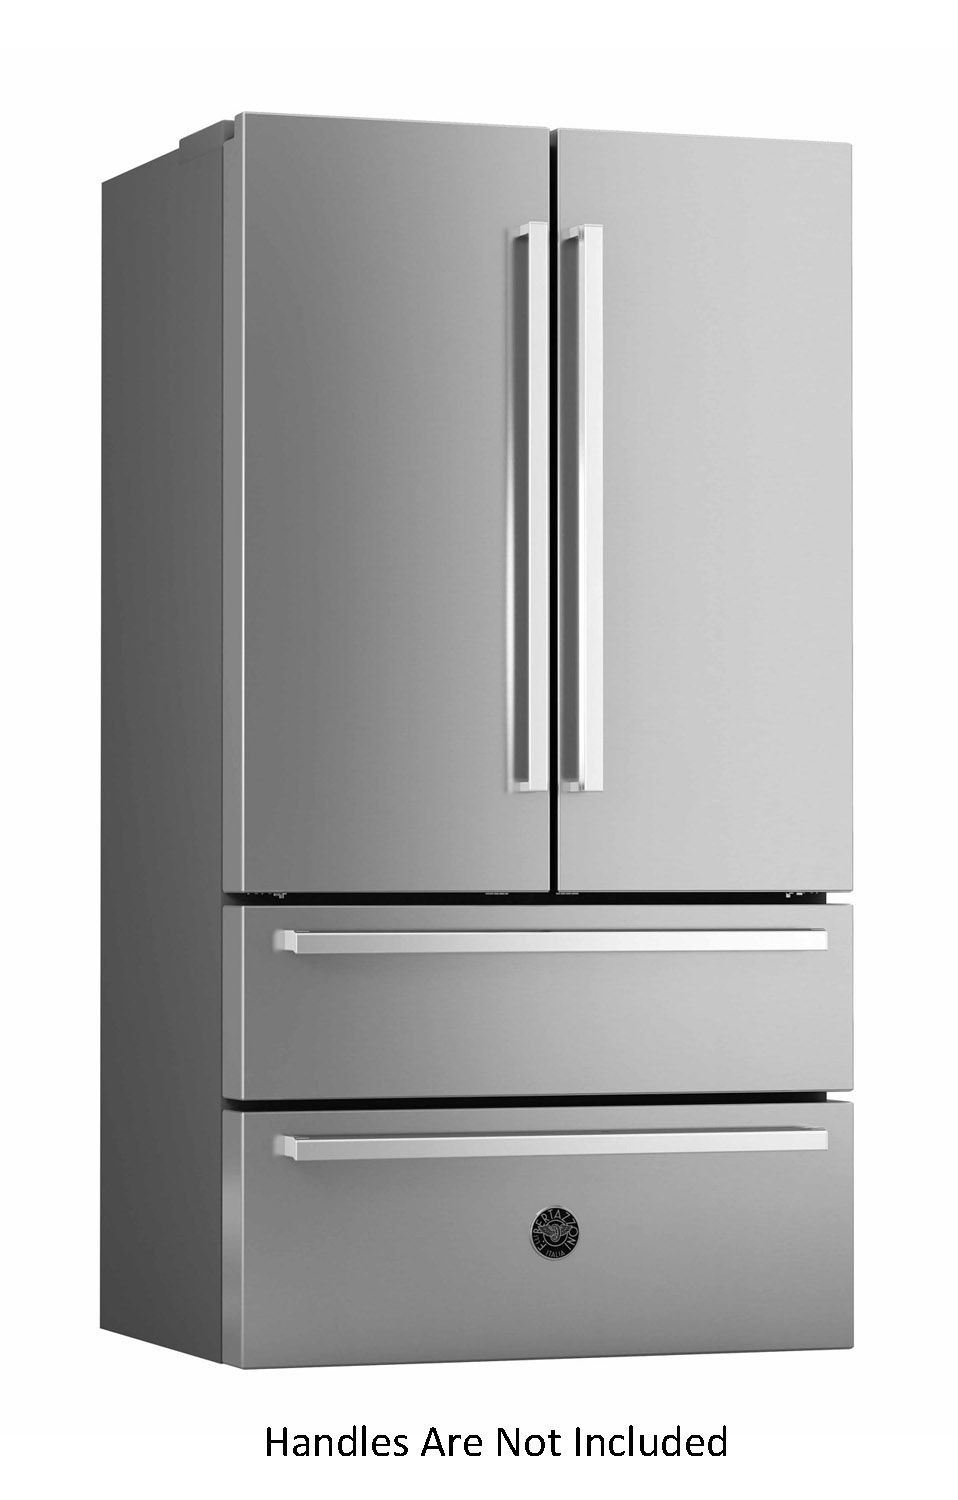 Bertazzoni 36 Stainless Steel Counter Depth French Door Refrigerator REF36X17